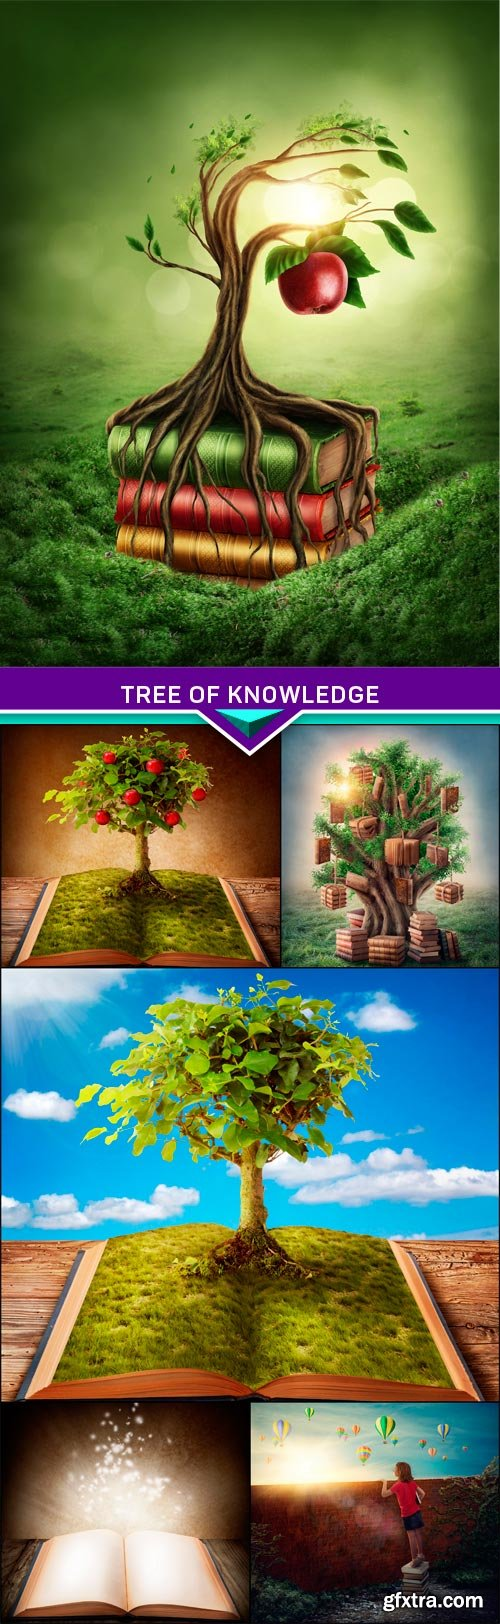 Tree of knowledge and forbidden fruit 6x JPEG